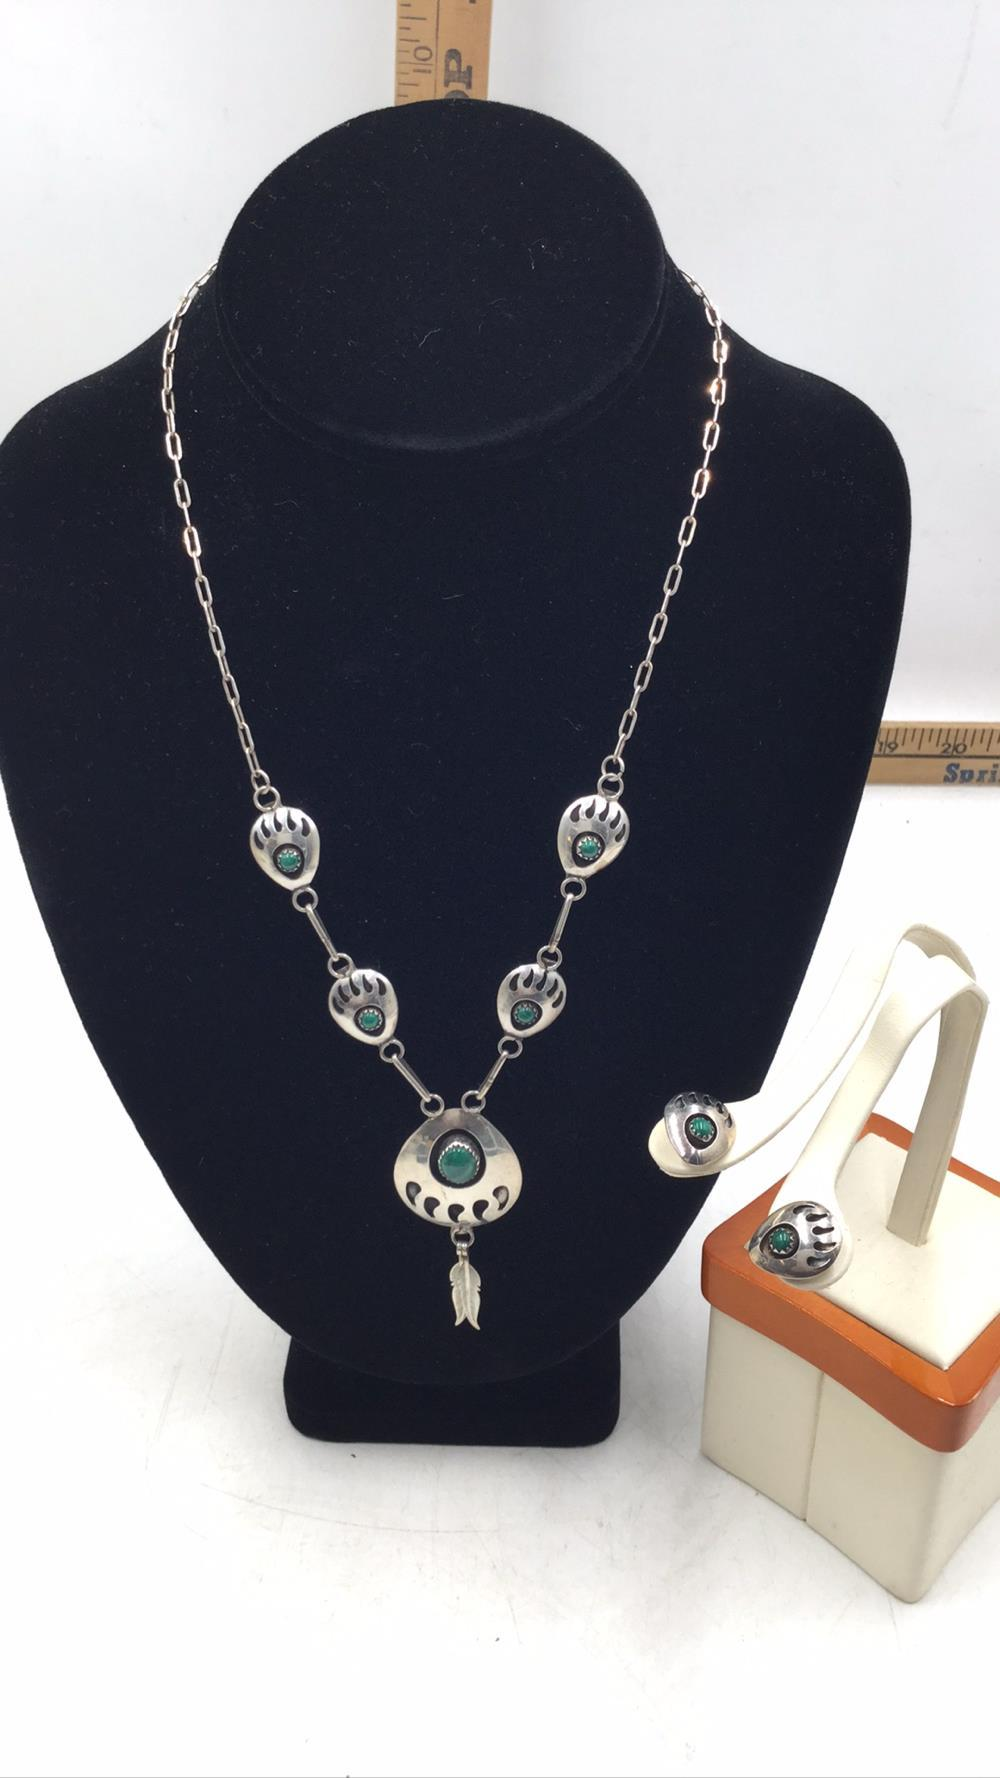 Malachite Shadowbox necklace and earrings